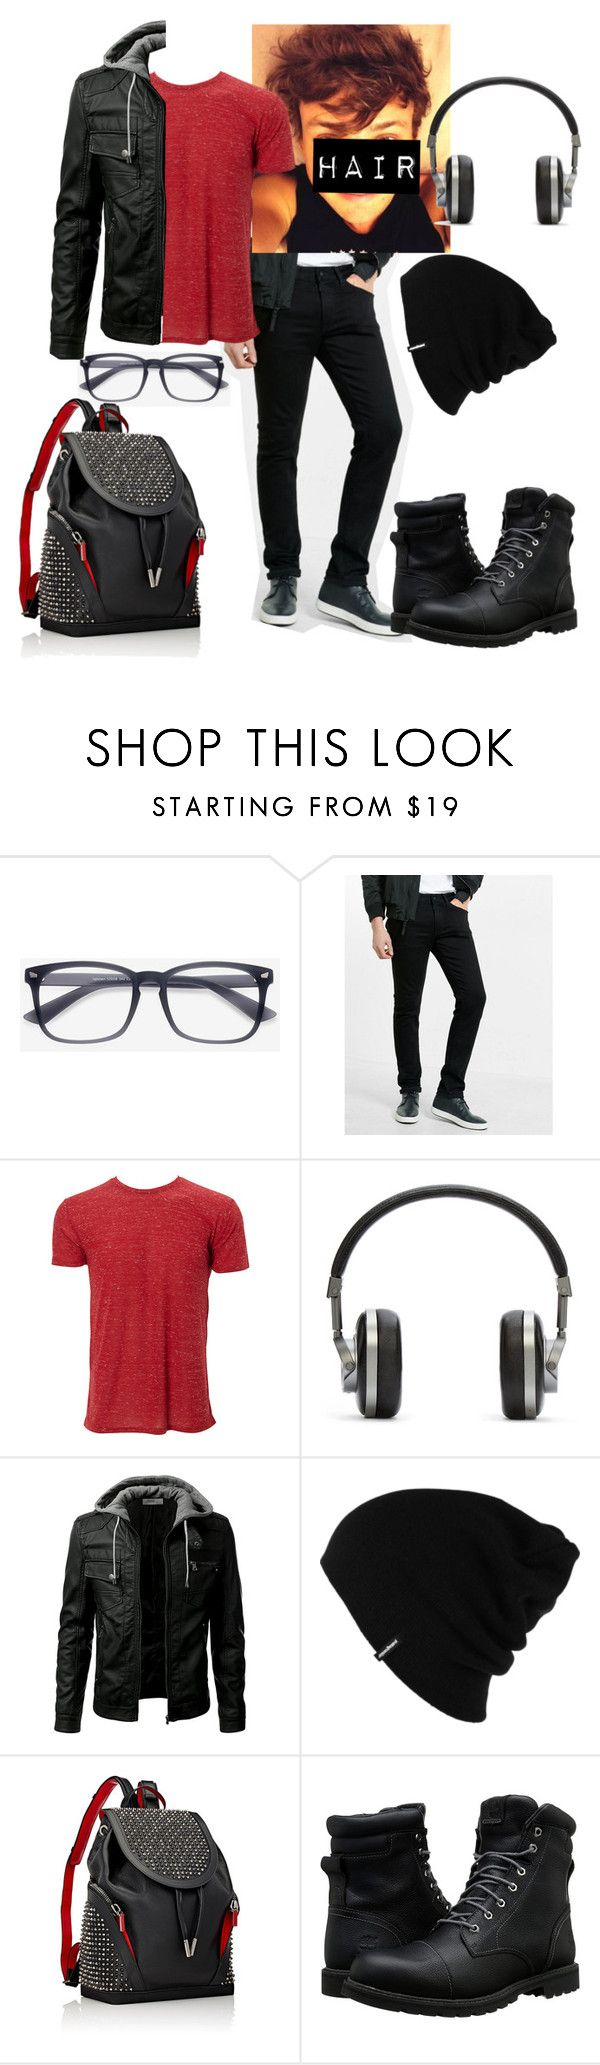 """""""black widdow's son, uriah johanson"""" by beautiful-tragic-love ❤ liked on Polyvore featuring Express, Master & Dynamic, Patagonia, Christian Louboutin, Timberland, men's fashion, menswear and school"""